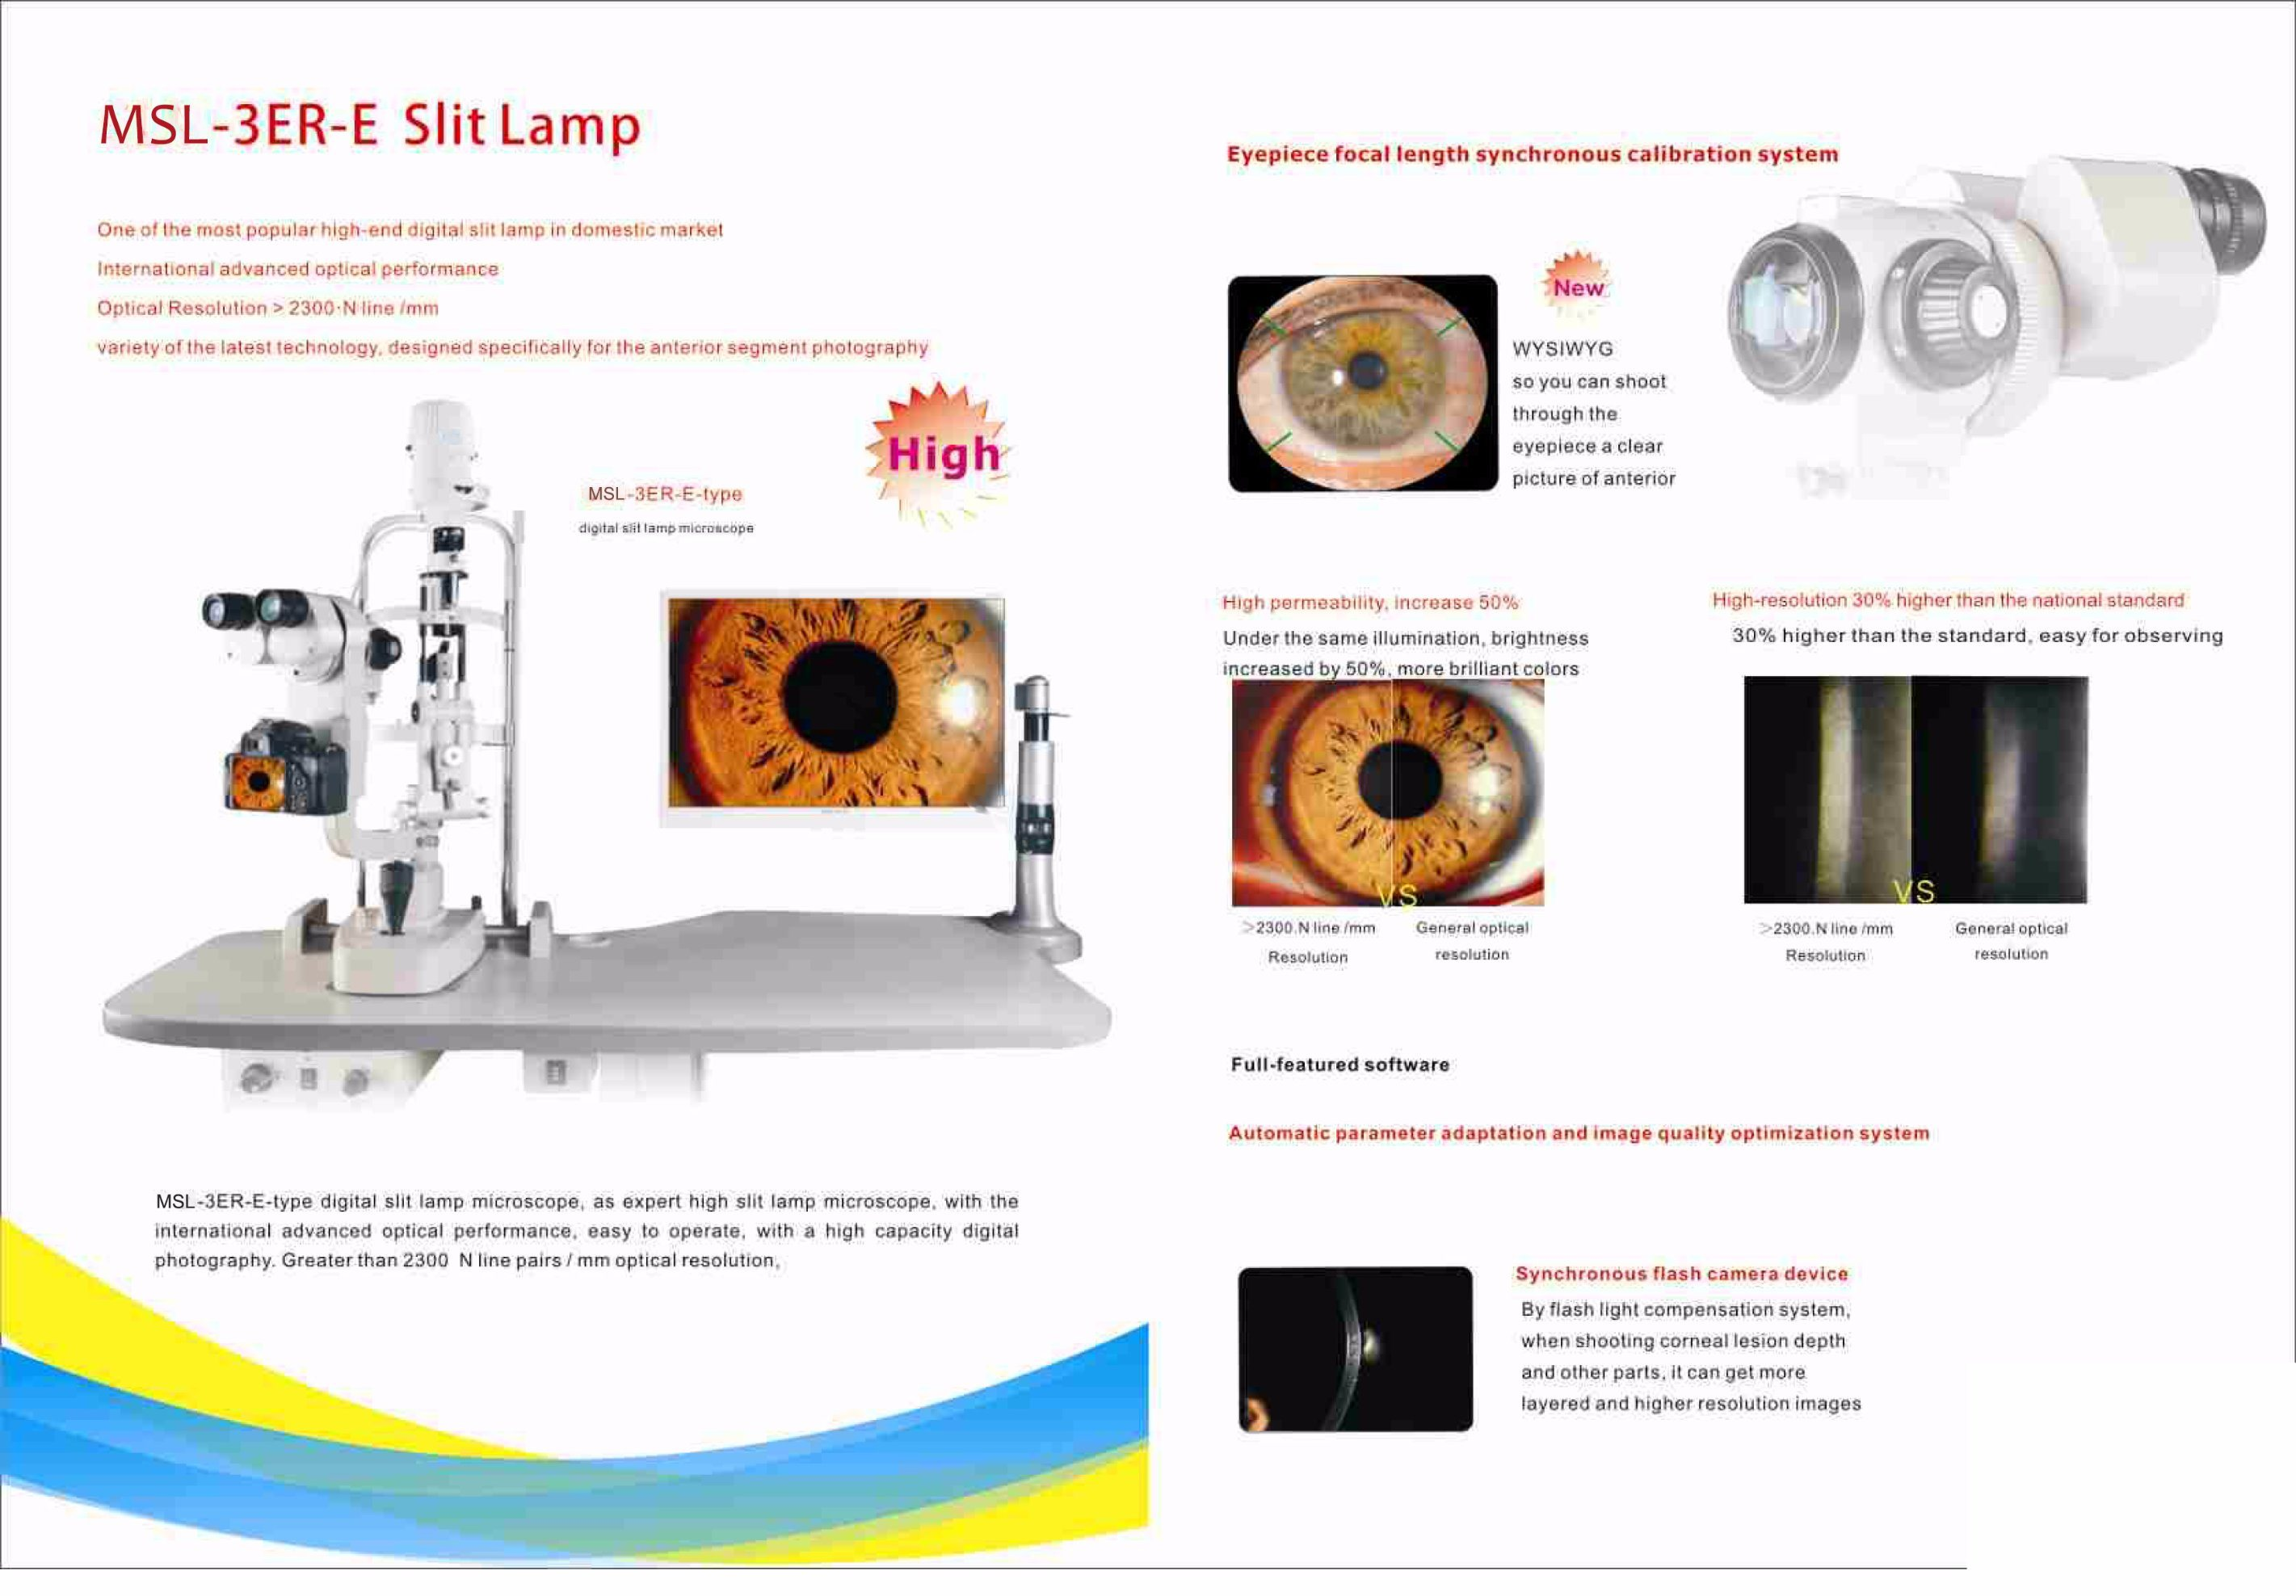 [Hot Item] Digital Slit Lamp Microscope/Slip Lamp with Digital Slit Lamp  Microscope, Ophthalmic Equipment